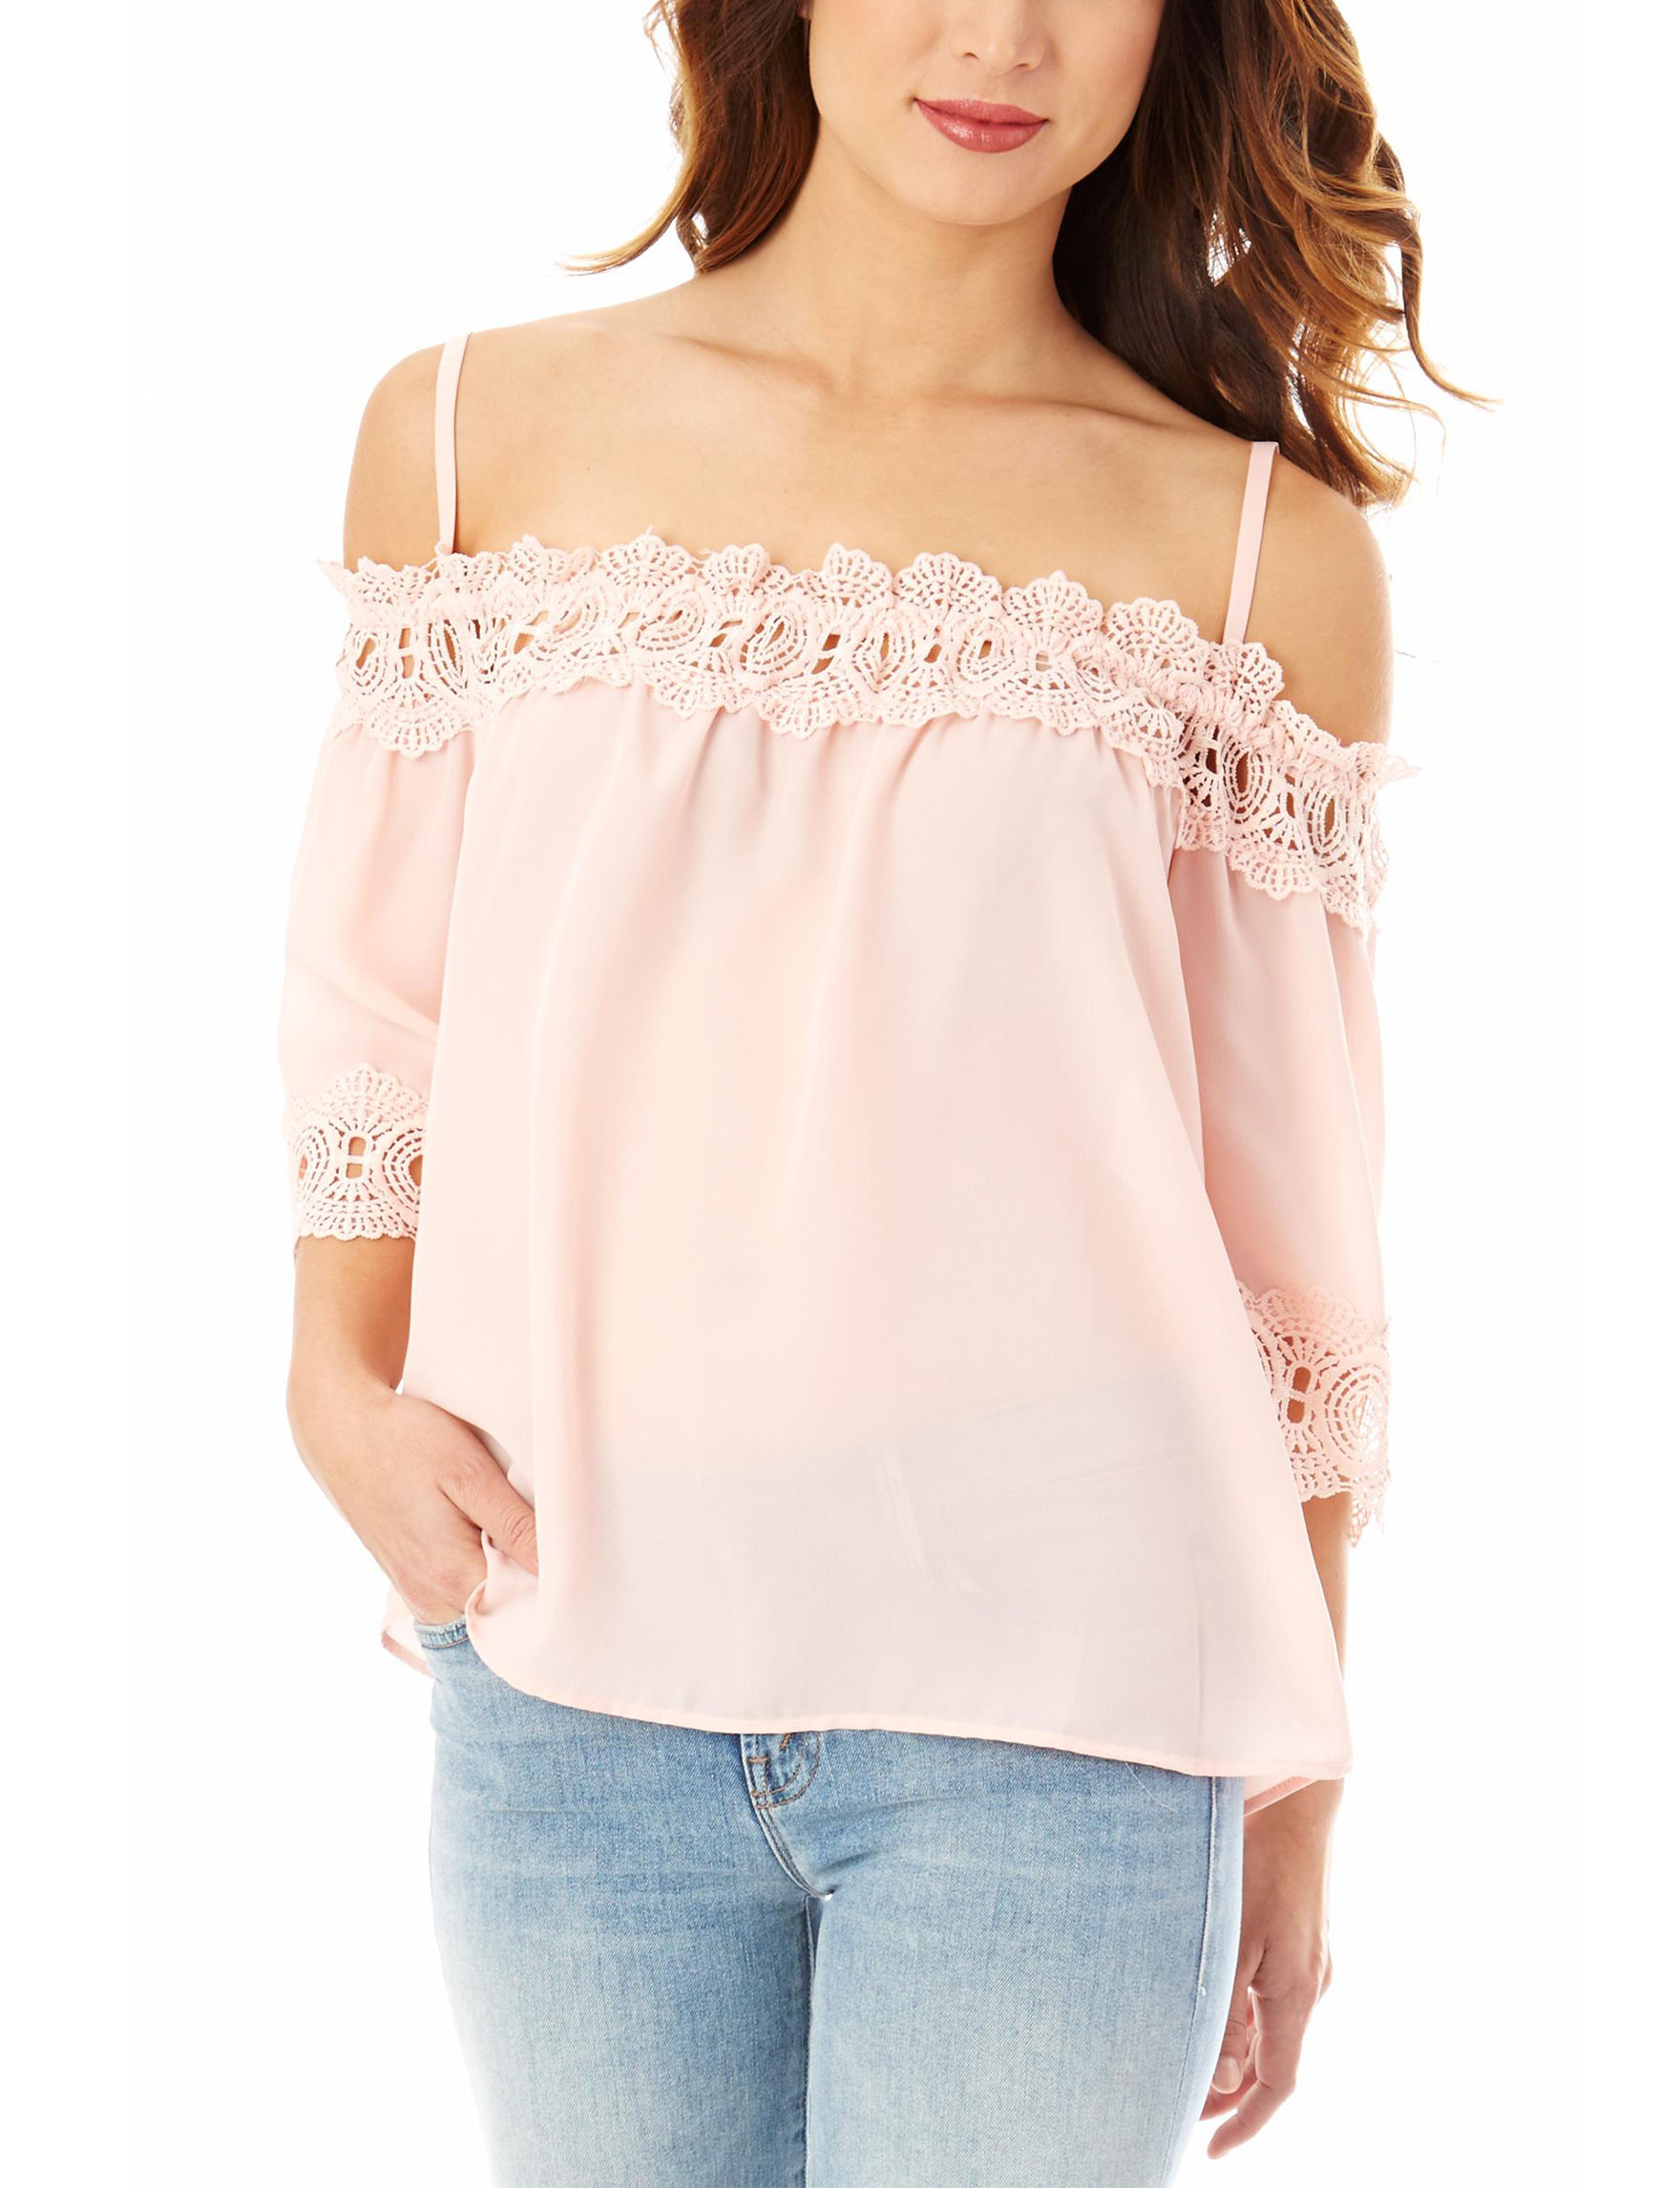 A. Byer Rose Shirts & Blouses